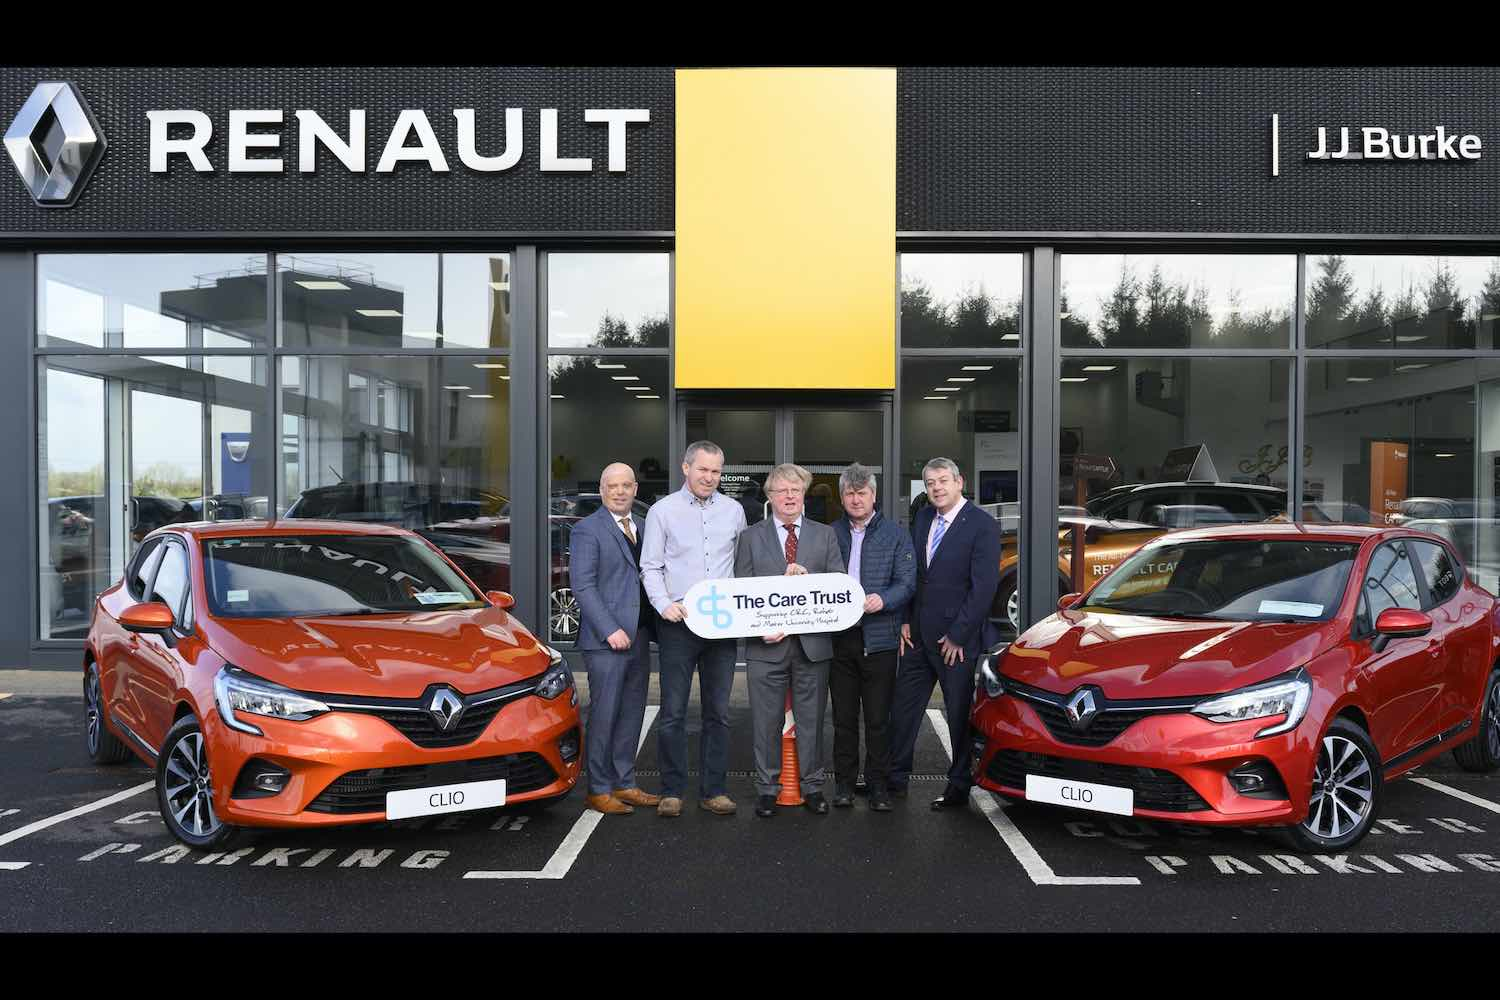 Car News | Renault Ireland hands over first cars to winners of charity lotto | CompleteCar.ie